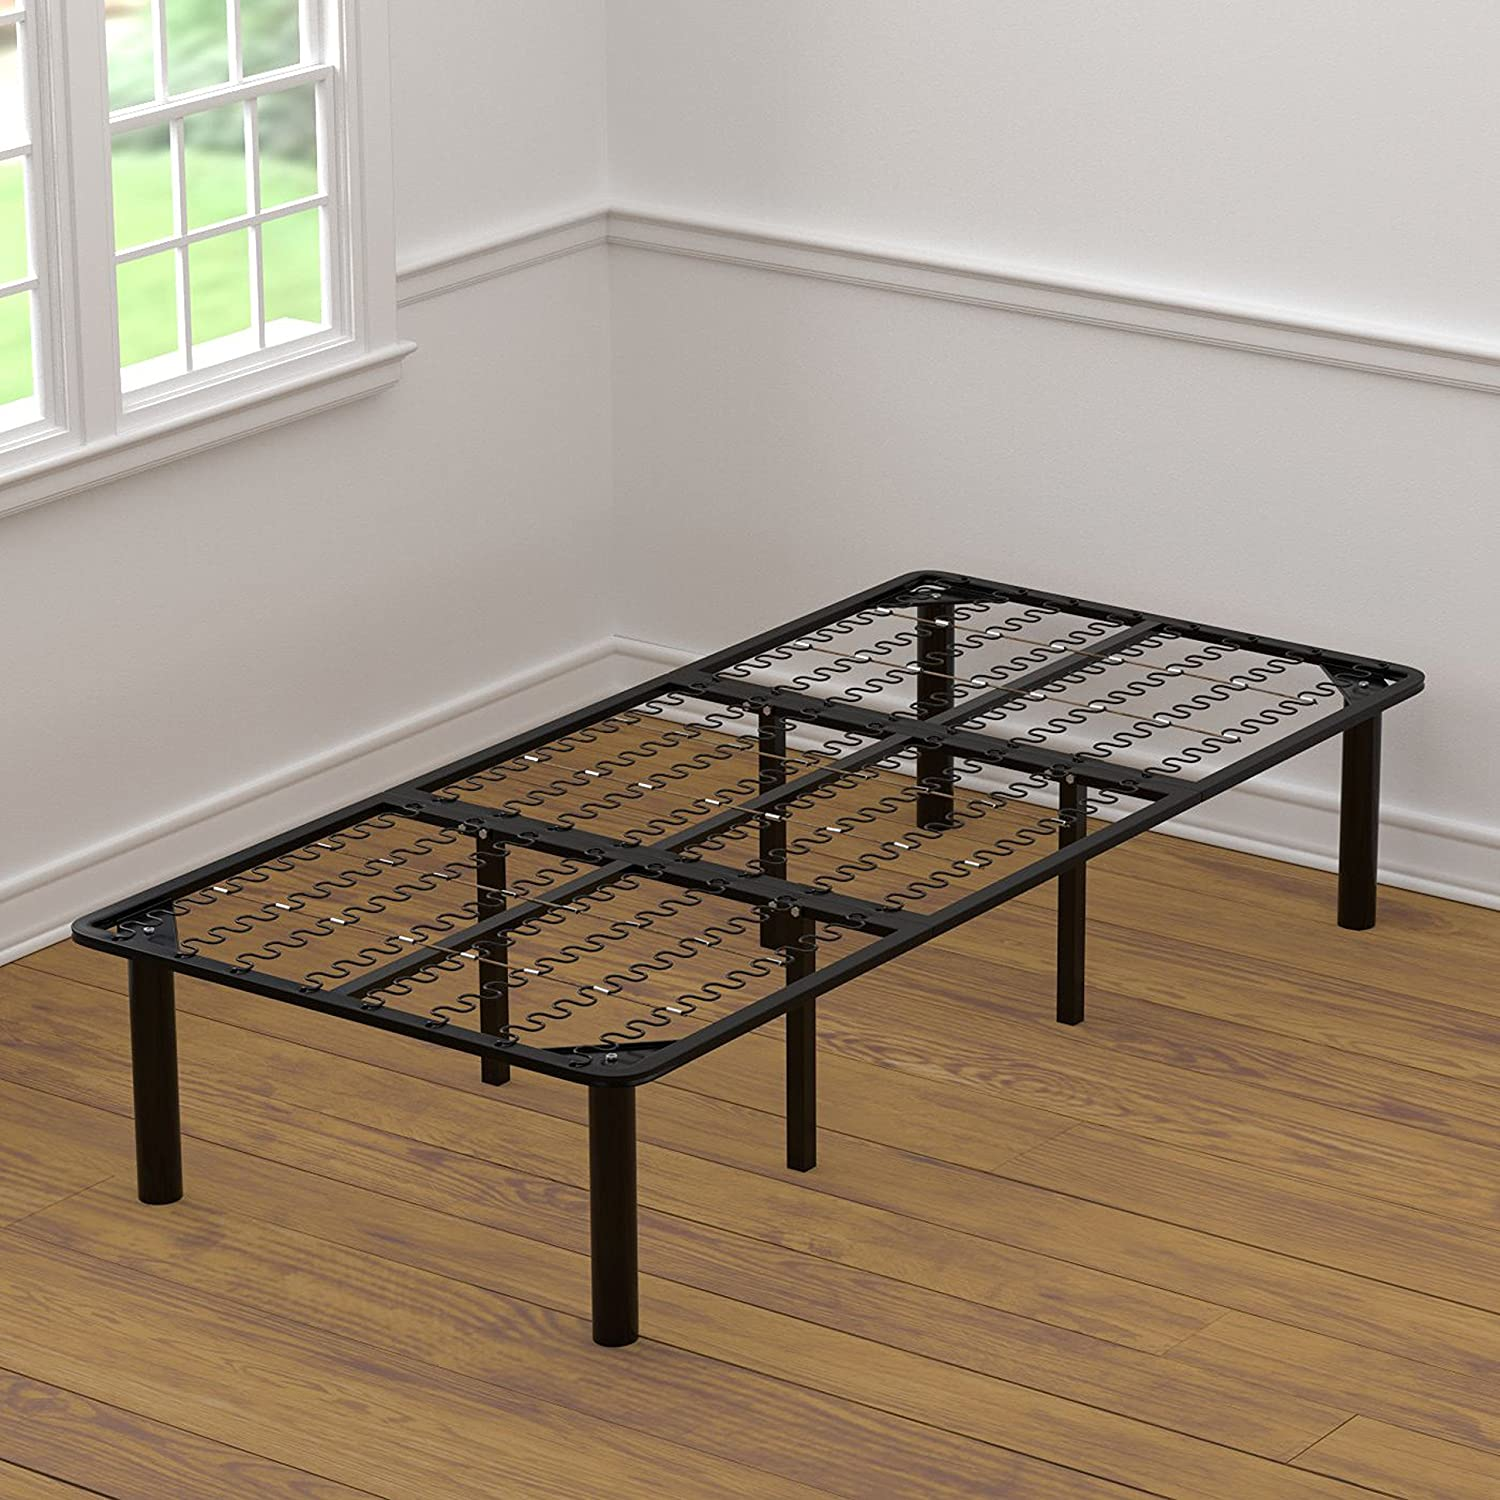 amazoncom handy living bed frame extra long twin kitchen dining - Xl Twin Bed Frame